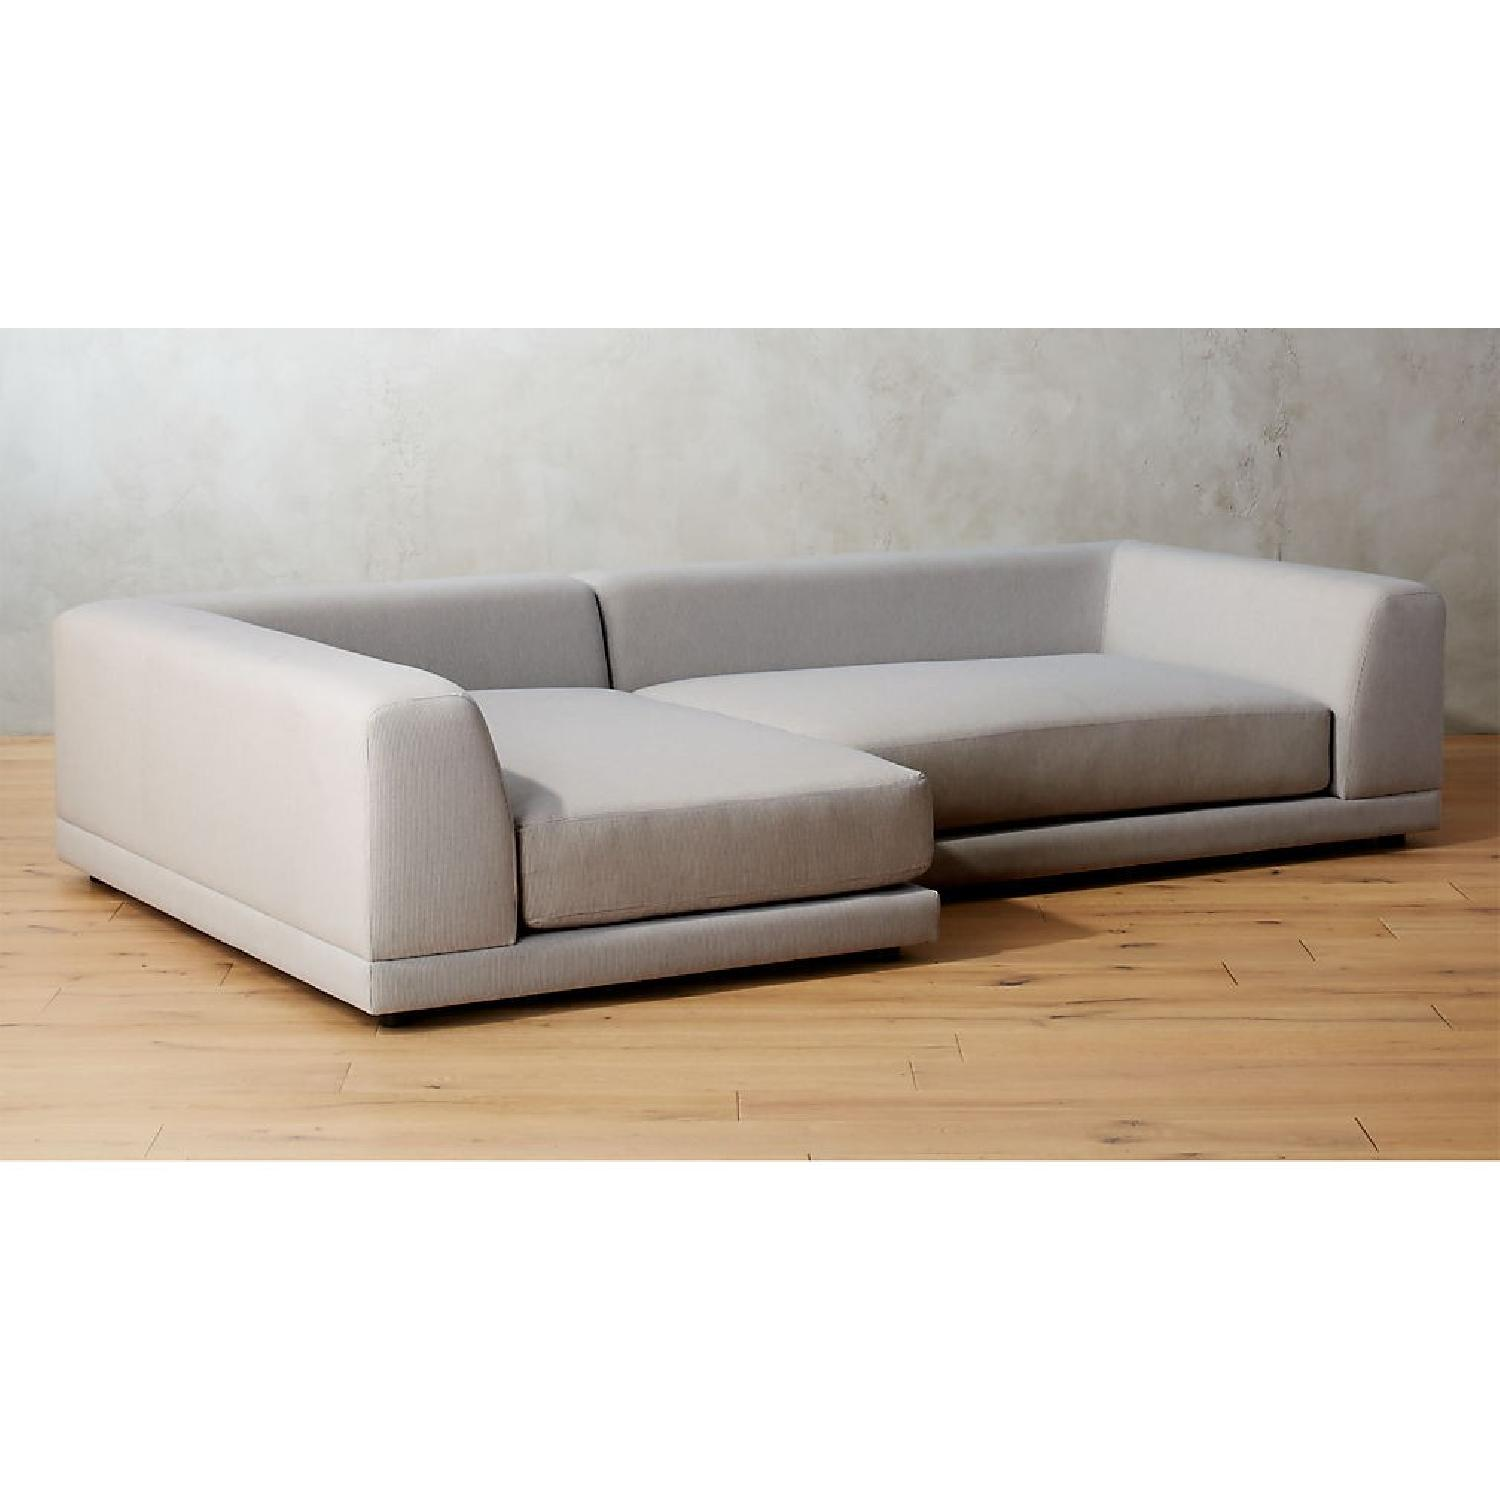 CB2 Right Arm Uno 2-Piece Sectional Sofa - image-5